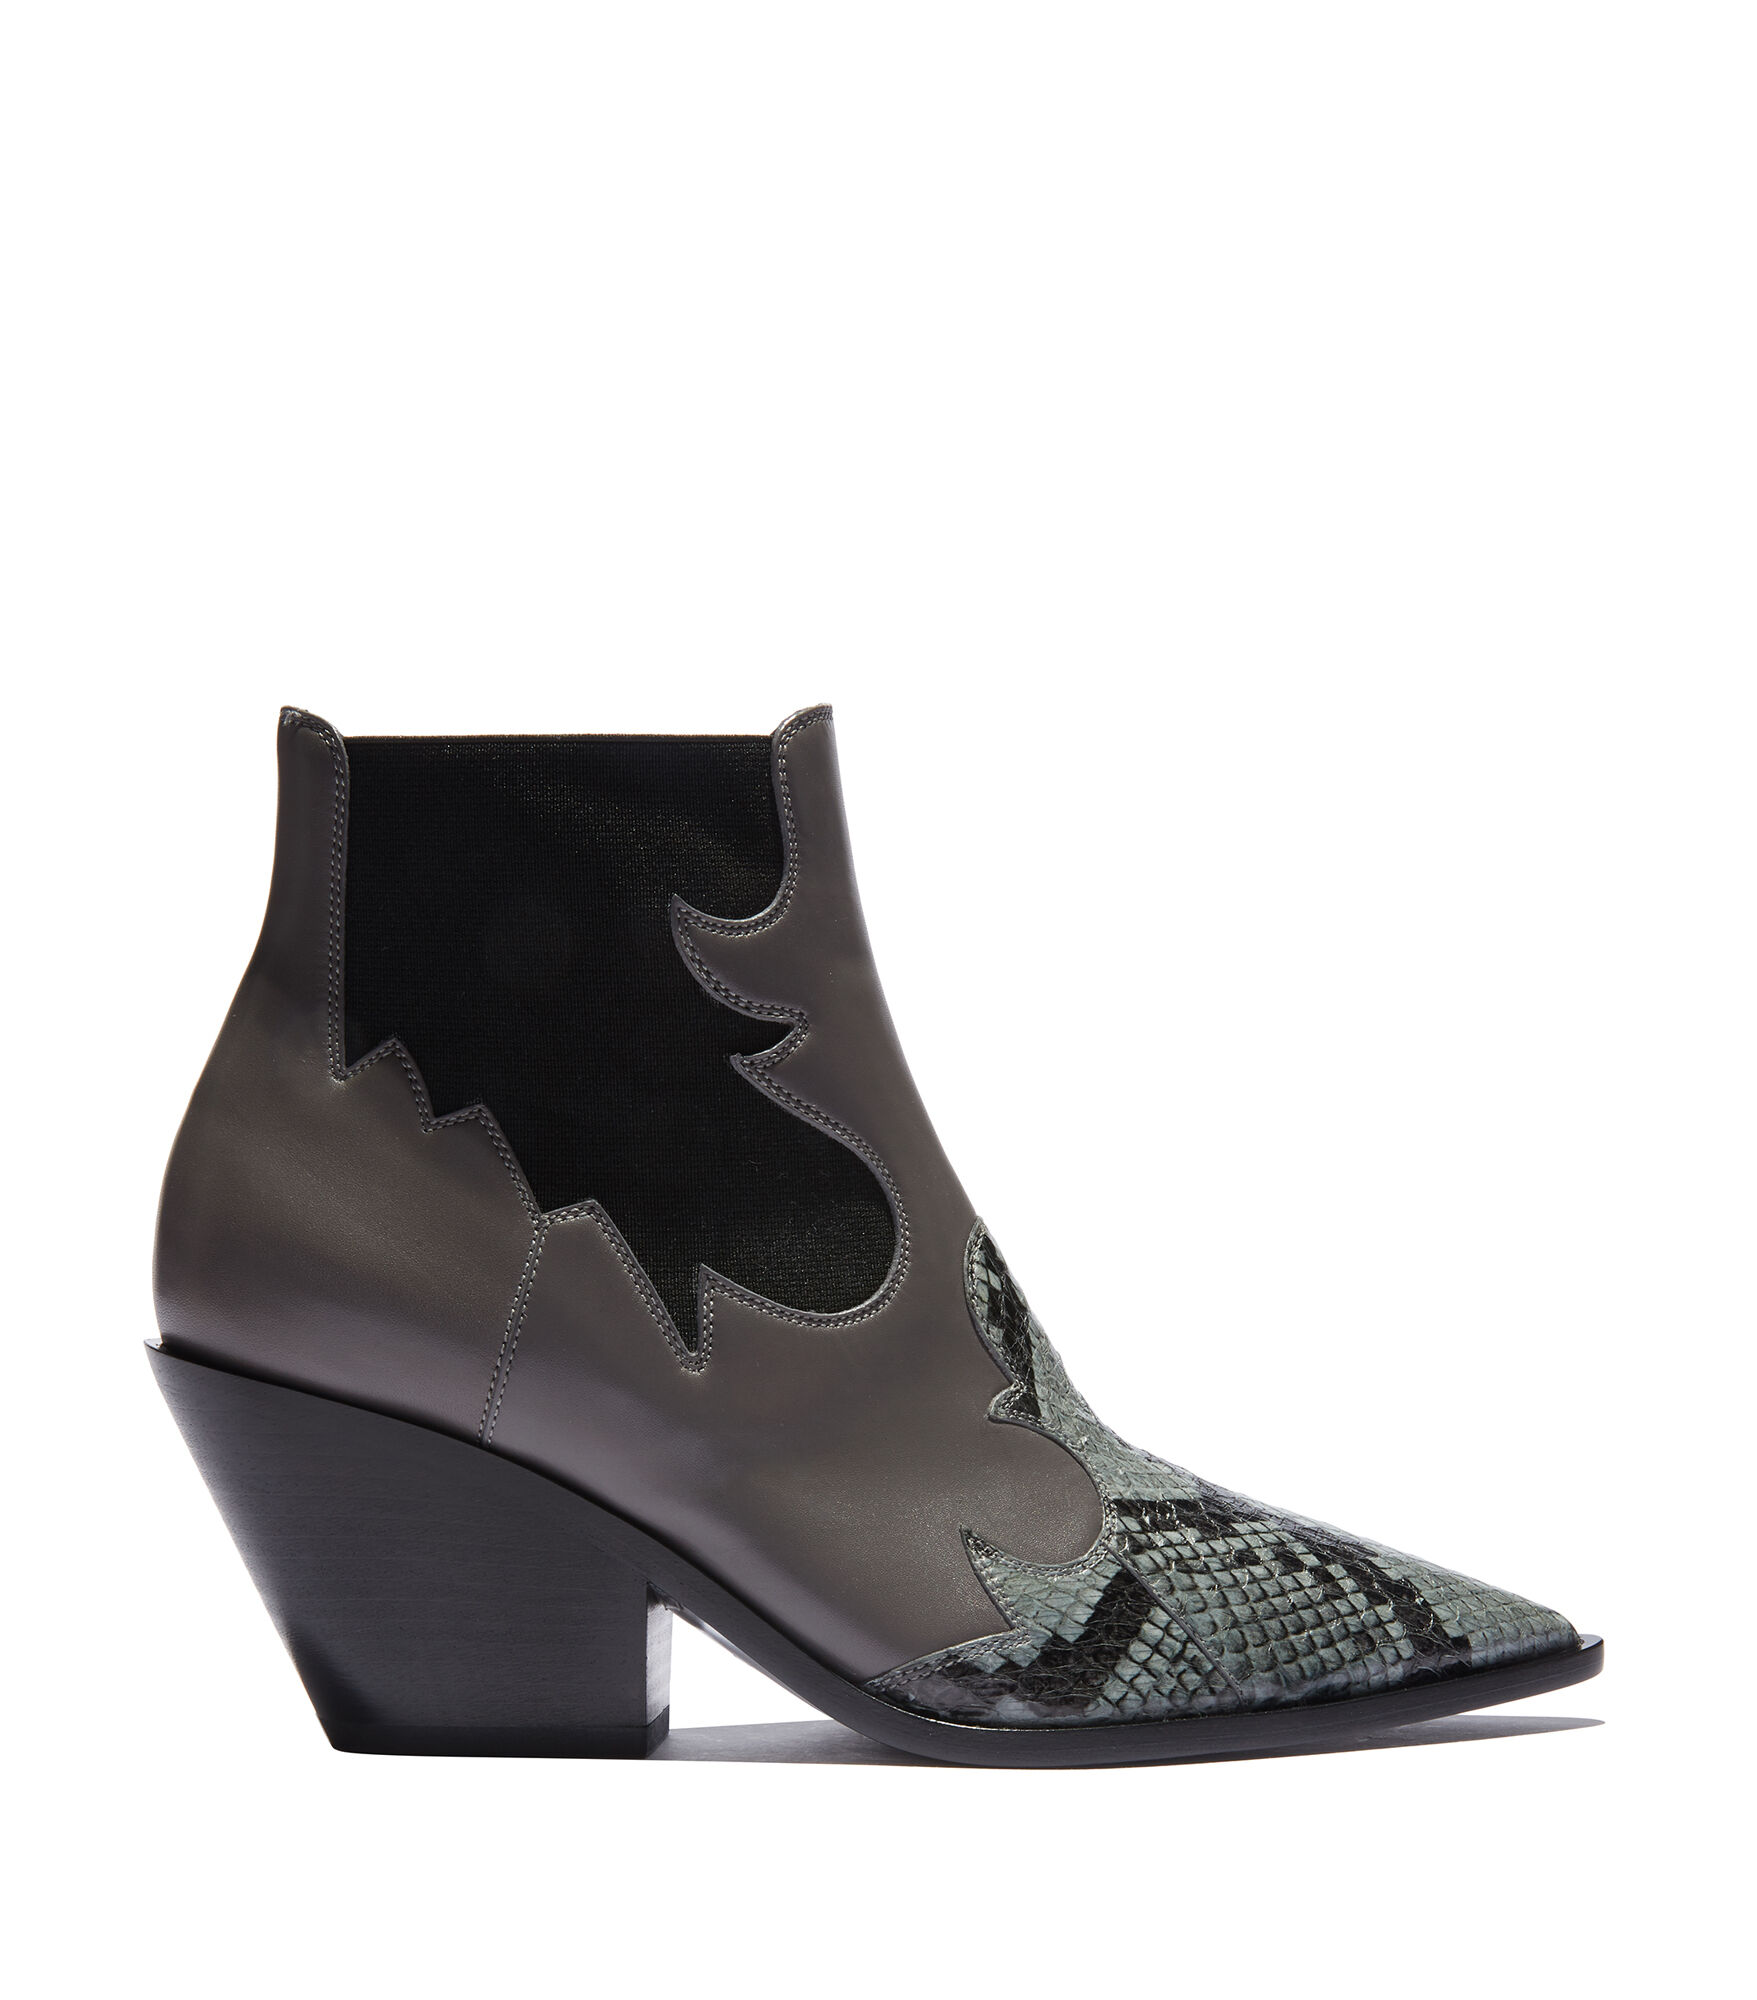 Casadei Ankle Boots - Hazzard Sharkskin Calf Leather and ayers